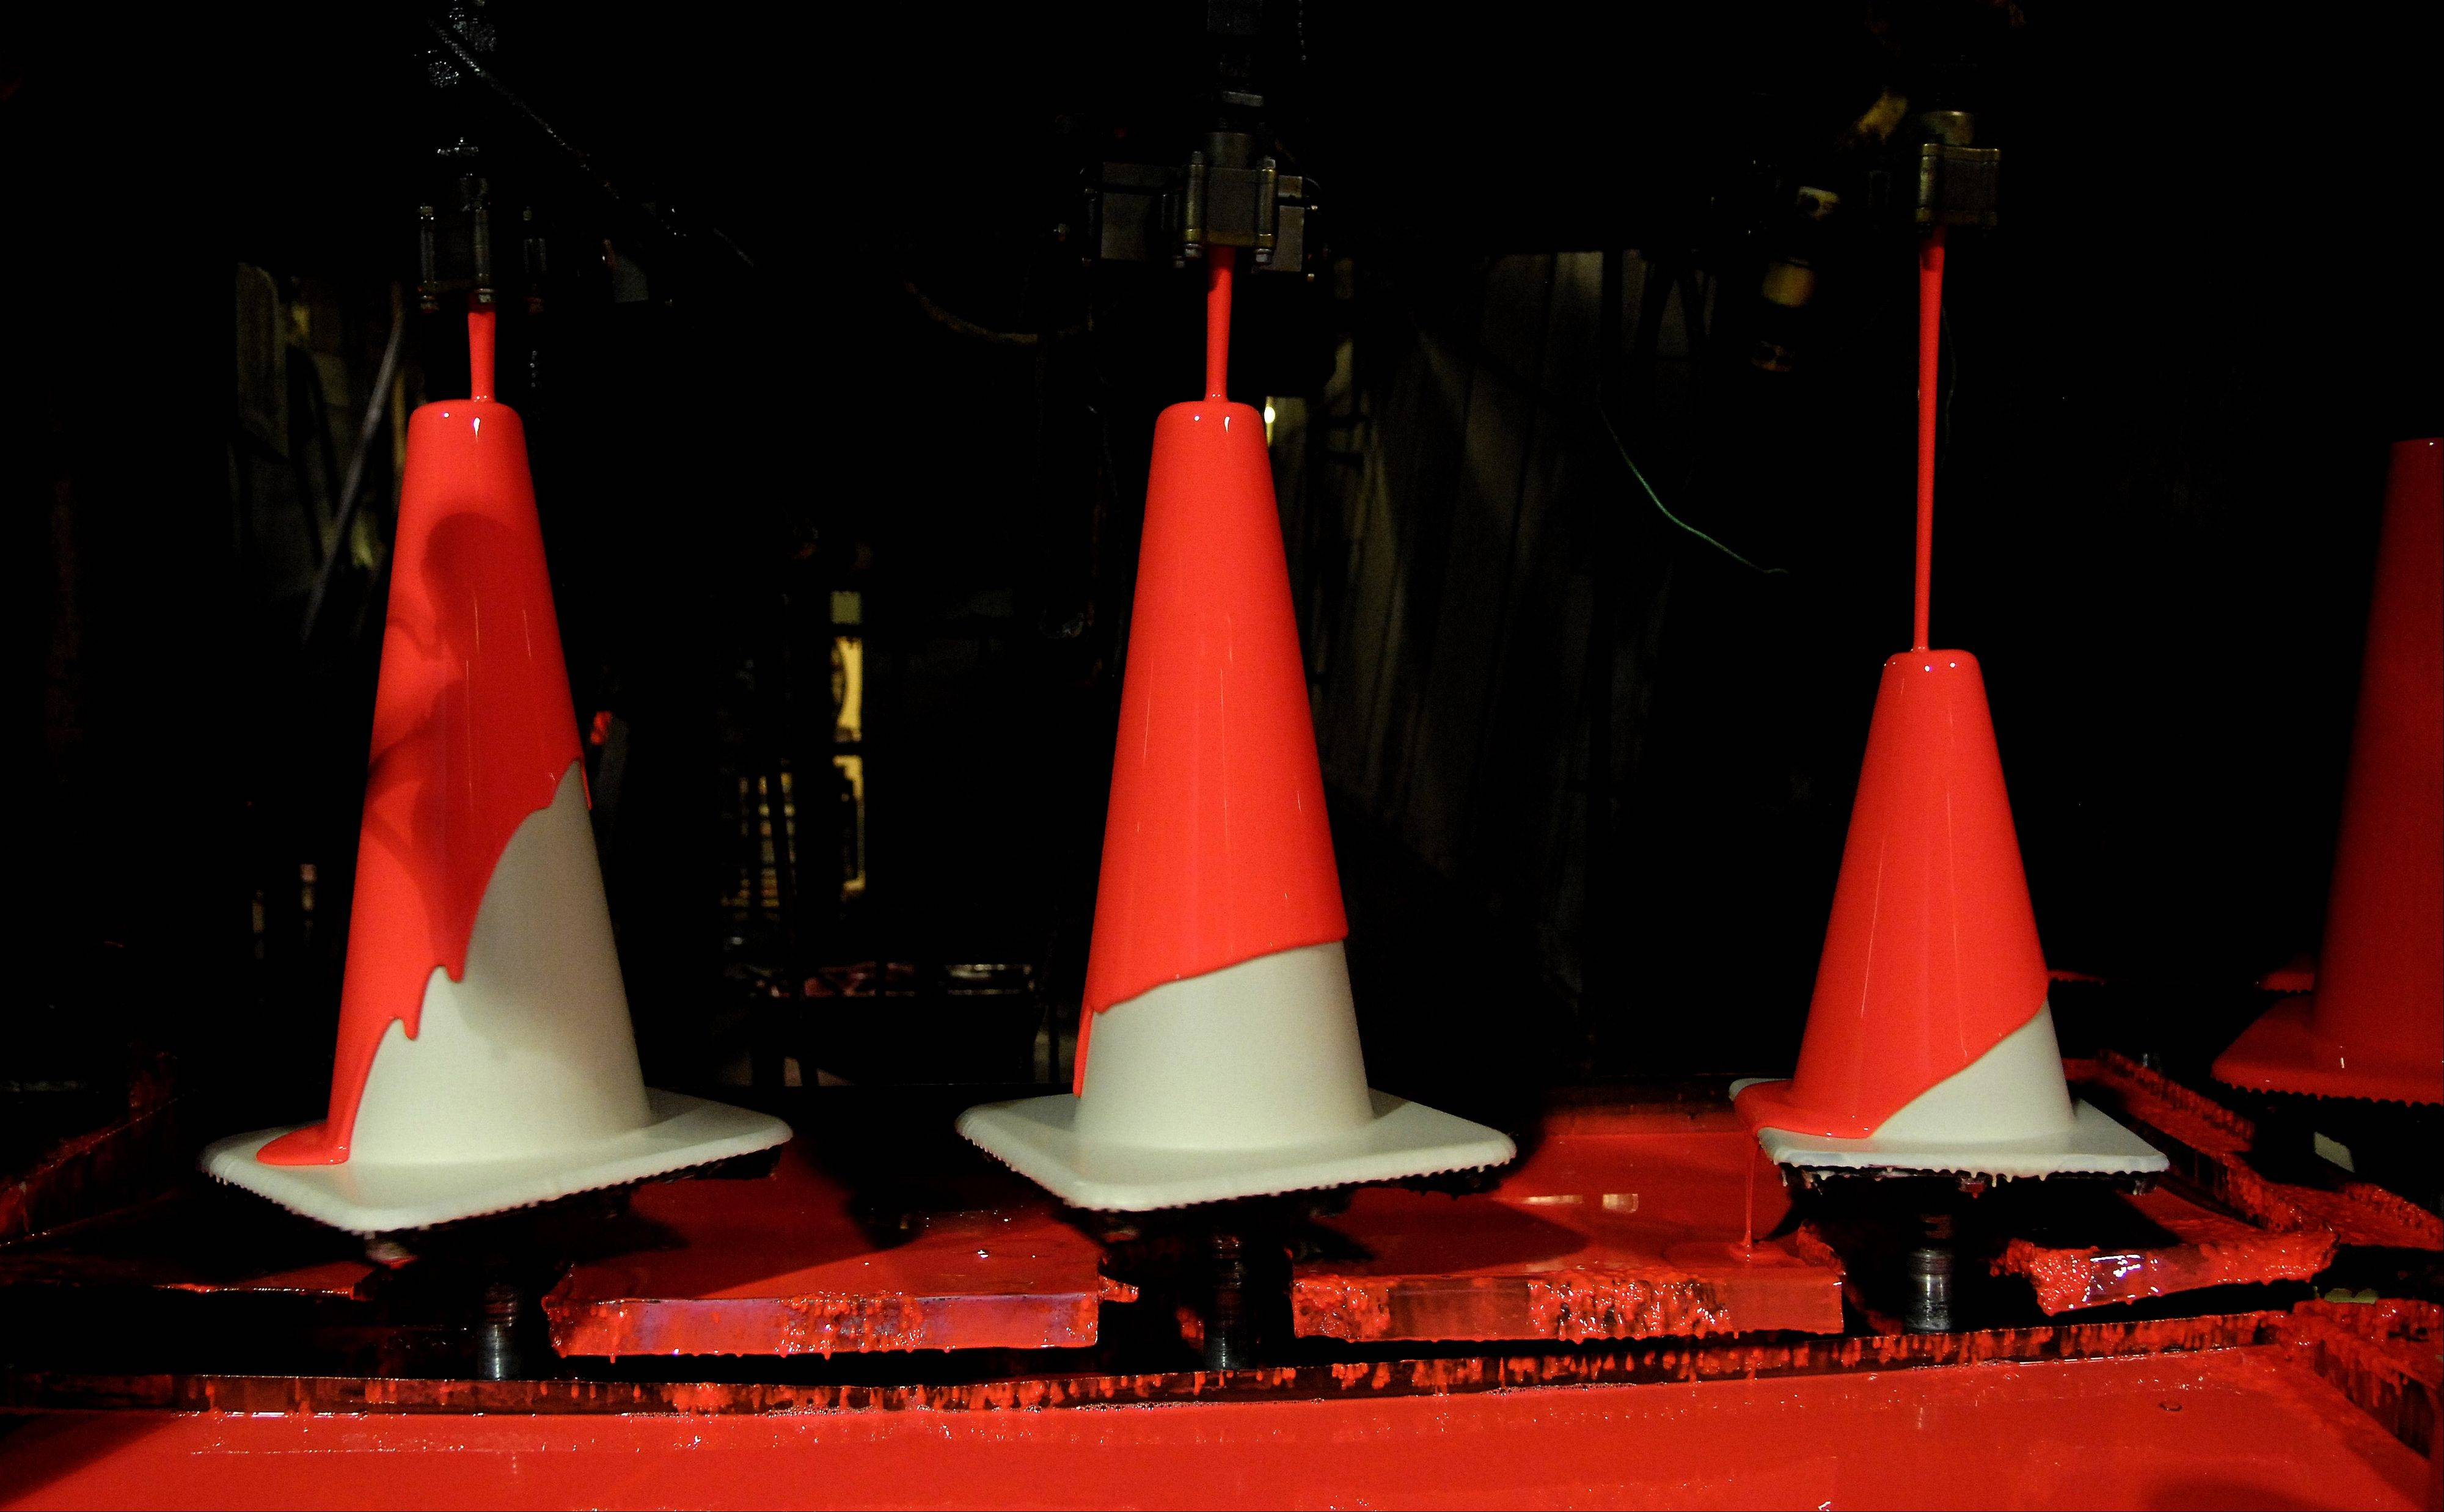 Cones start black, then are painted white before the orange plastic layer is poured over them.